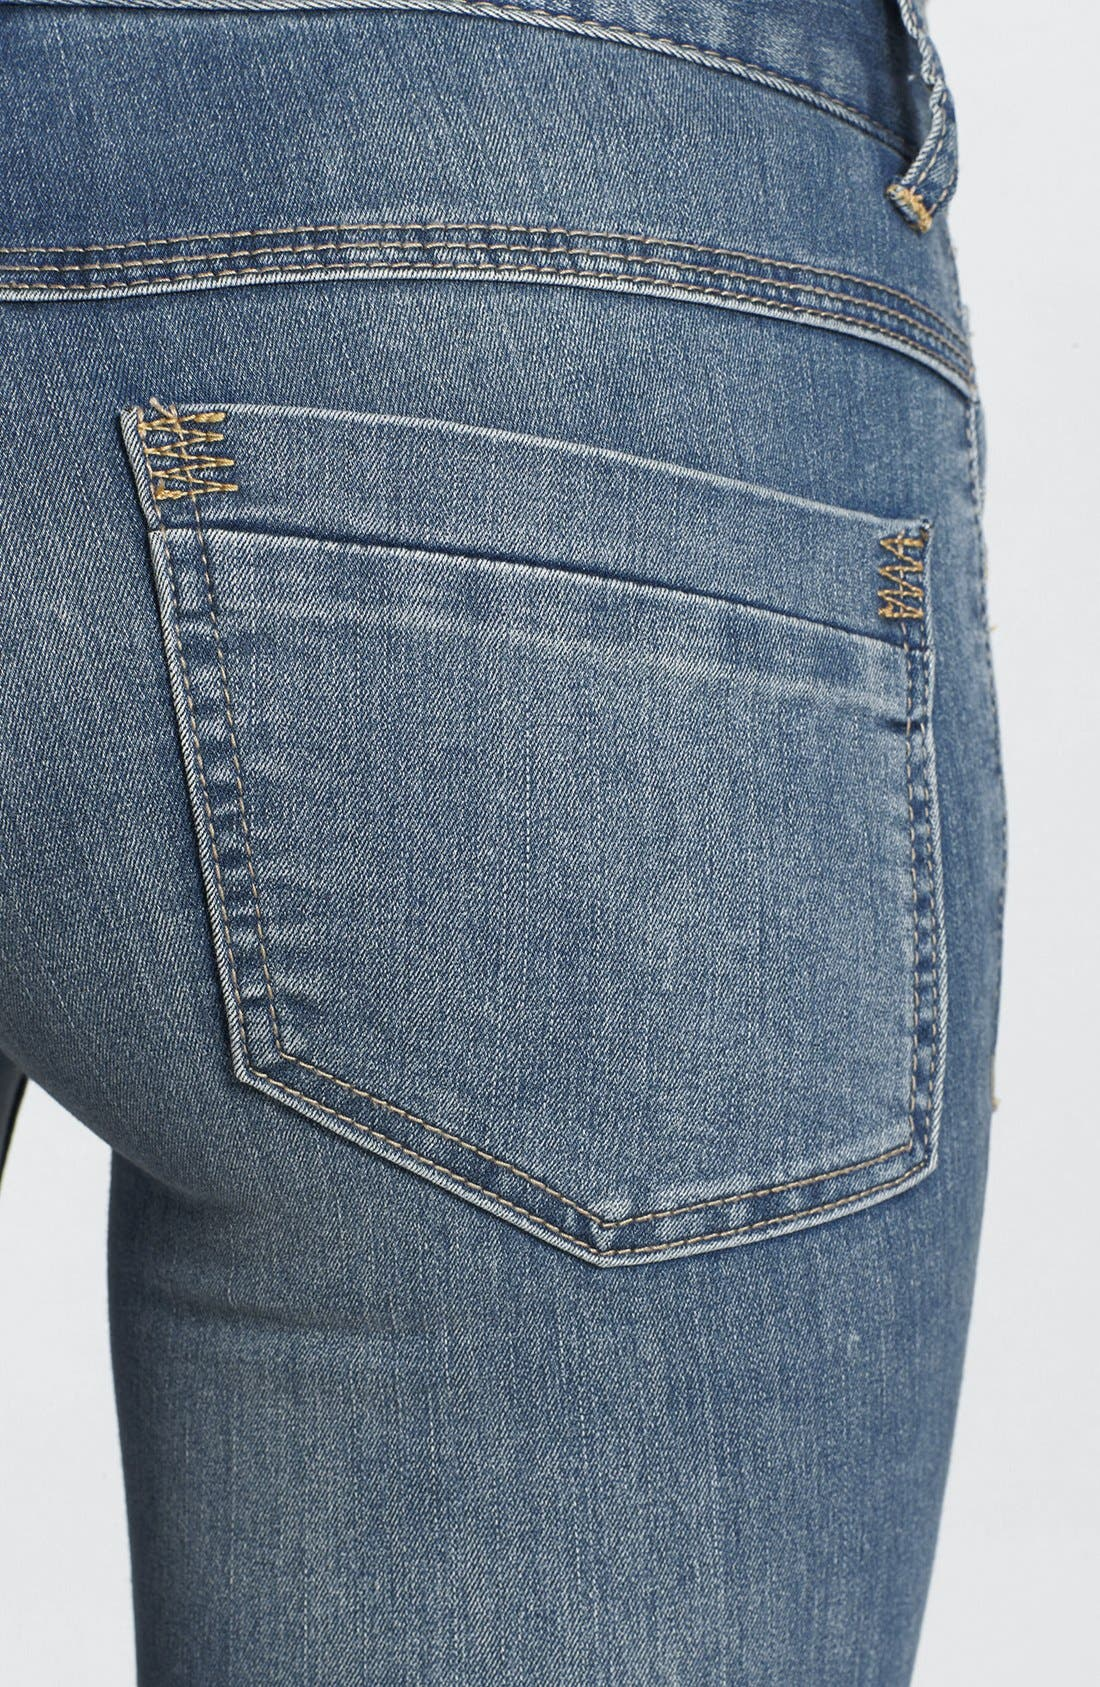 Alternate Image 3  - Free People Lightweight Stretch Skinny Jeans (Ocean Blue)